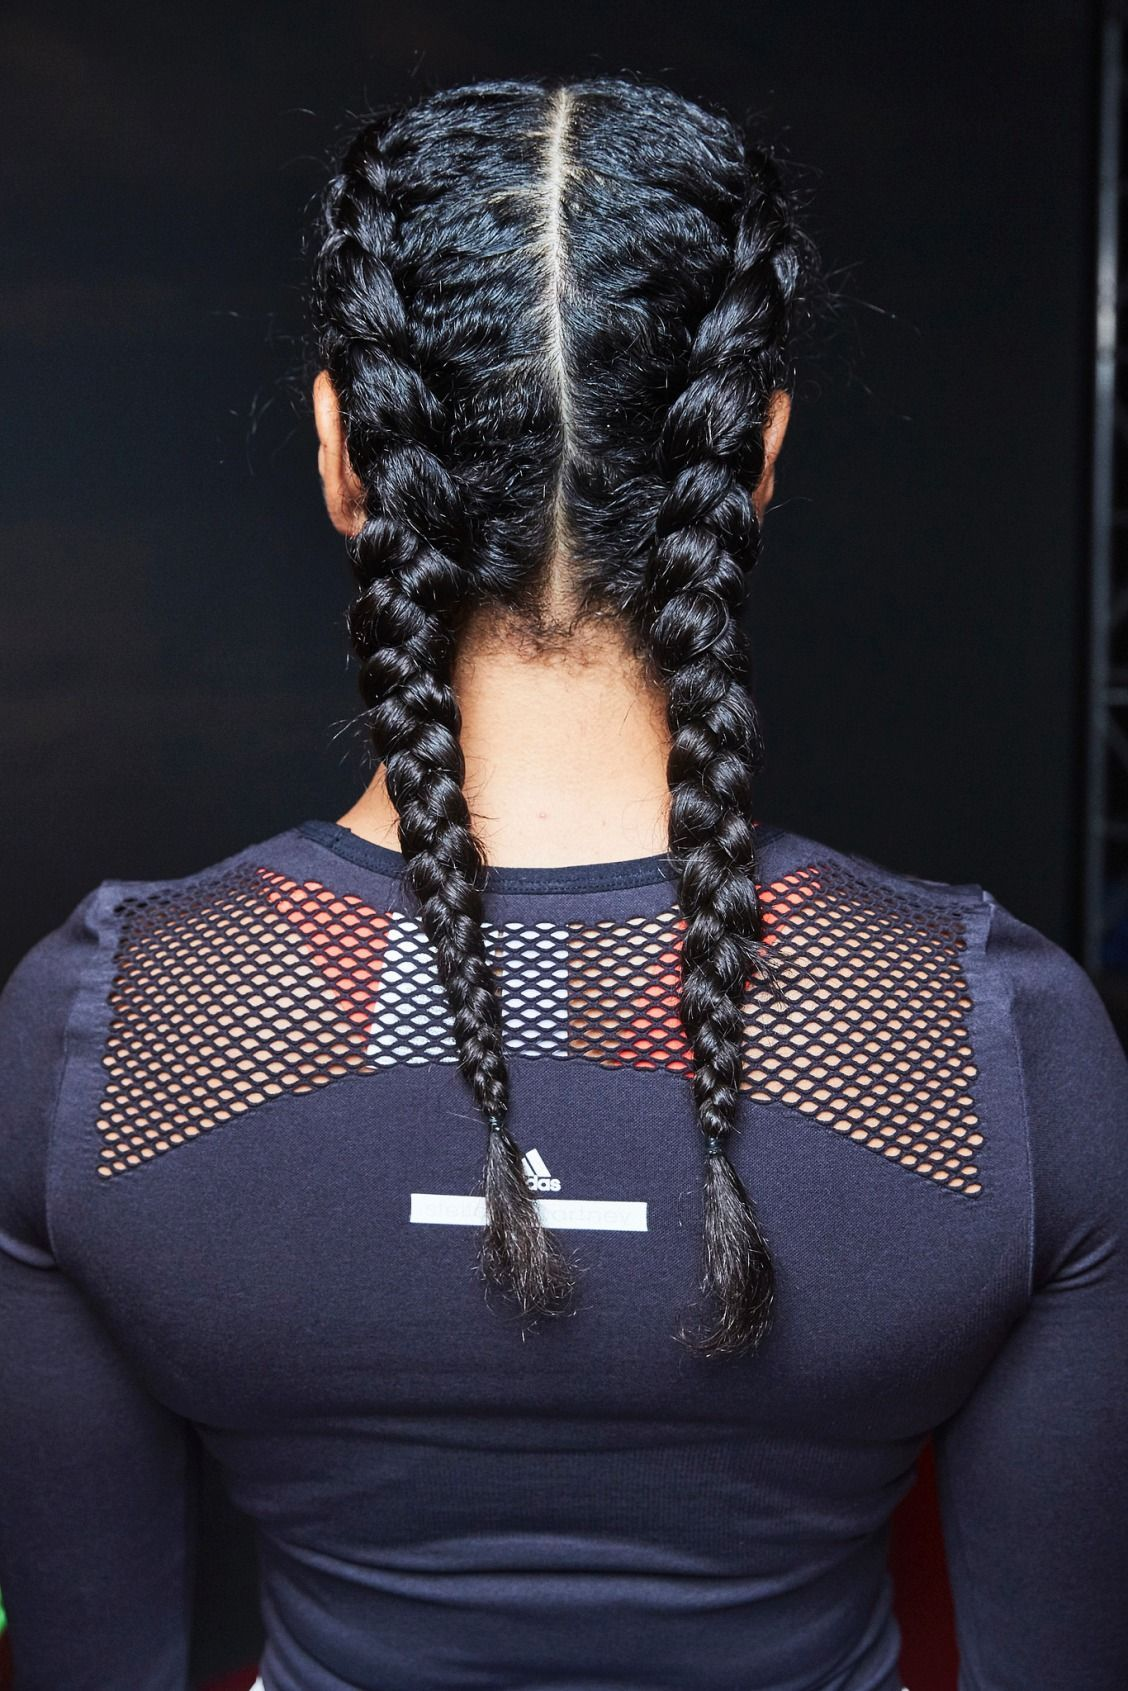 Go backstage with aveda to learn how to create these sporty parallel